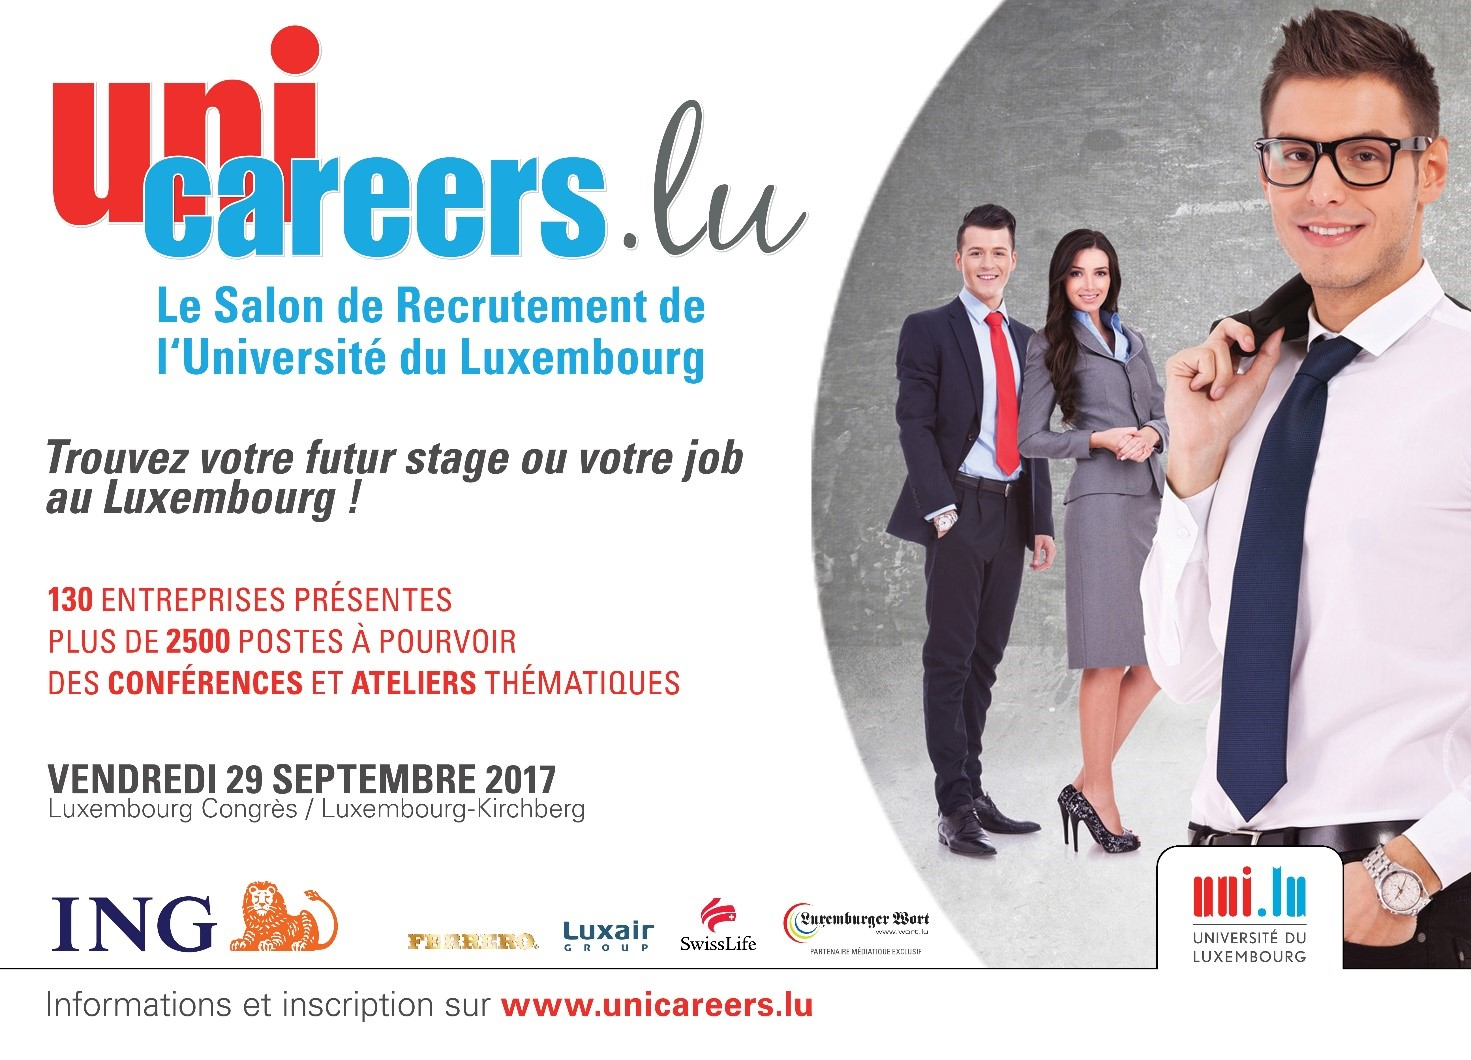 salon unicareers luxembourg silicon